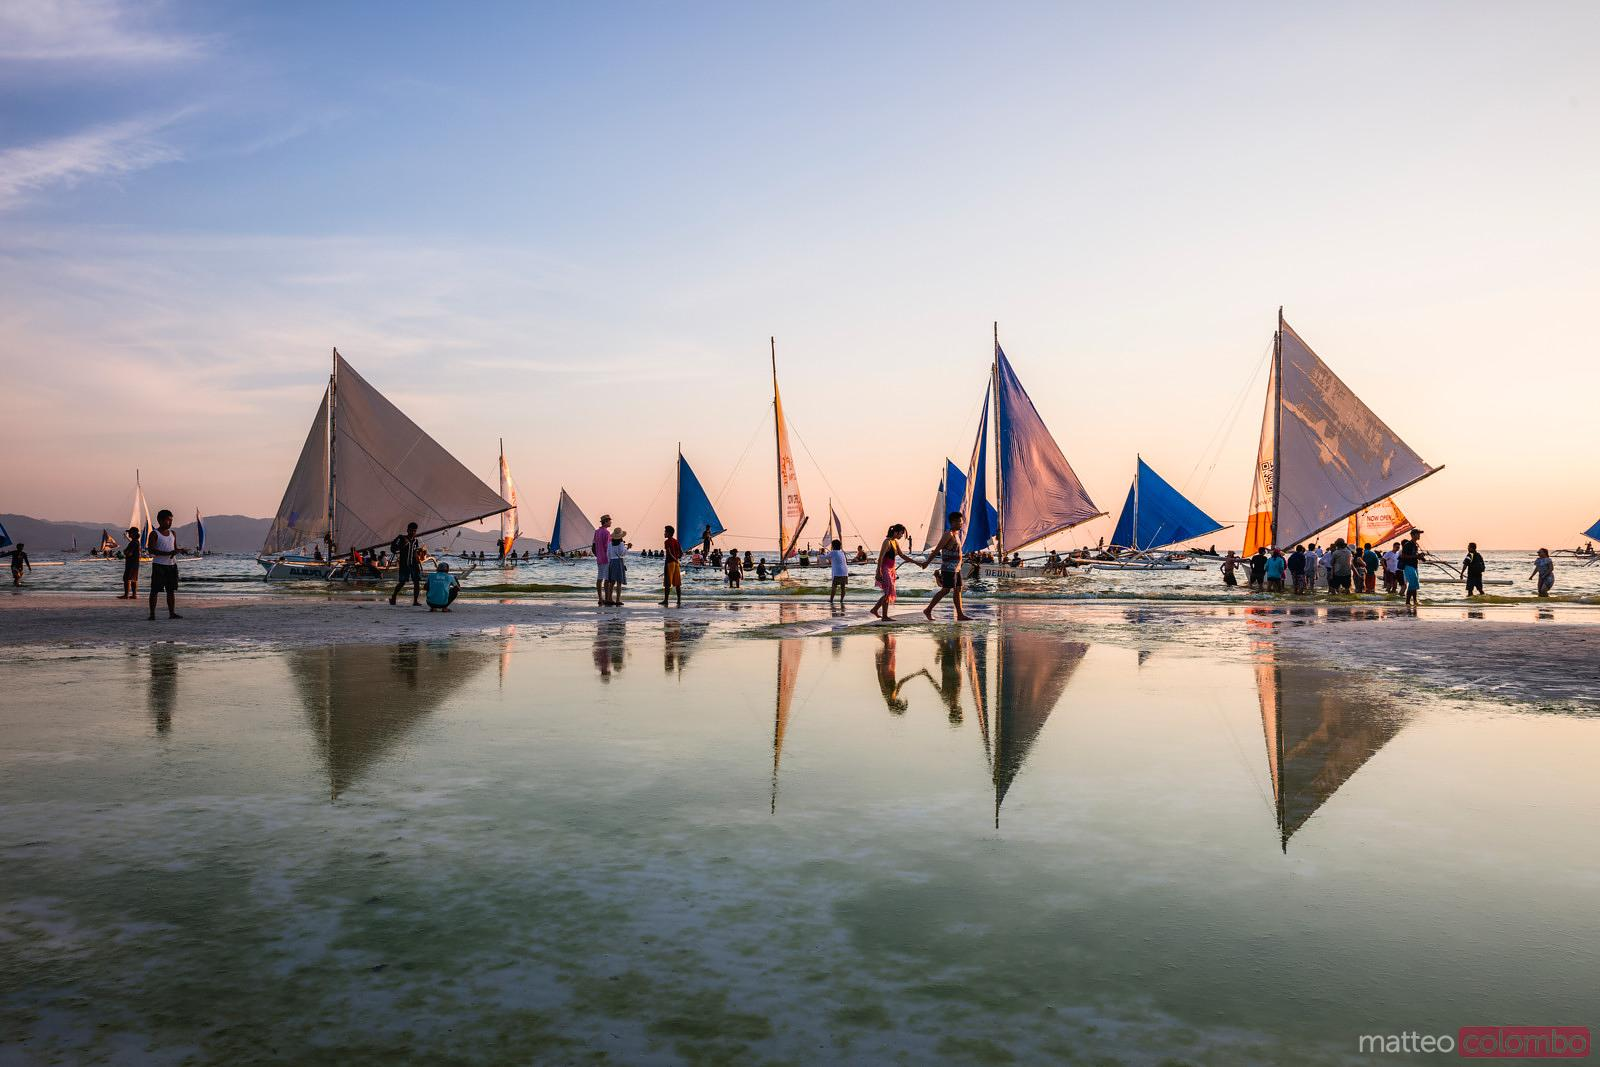 Sailboats at sunset, Boracay island, Philippines